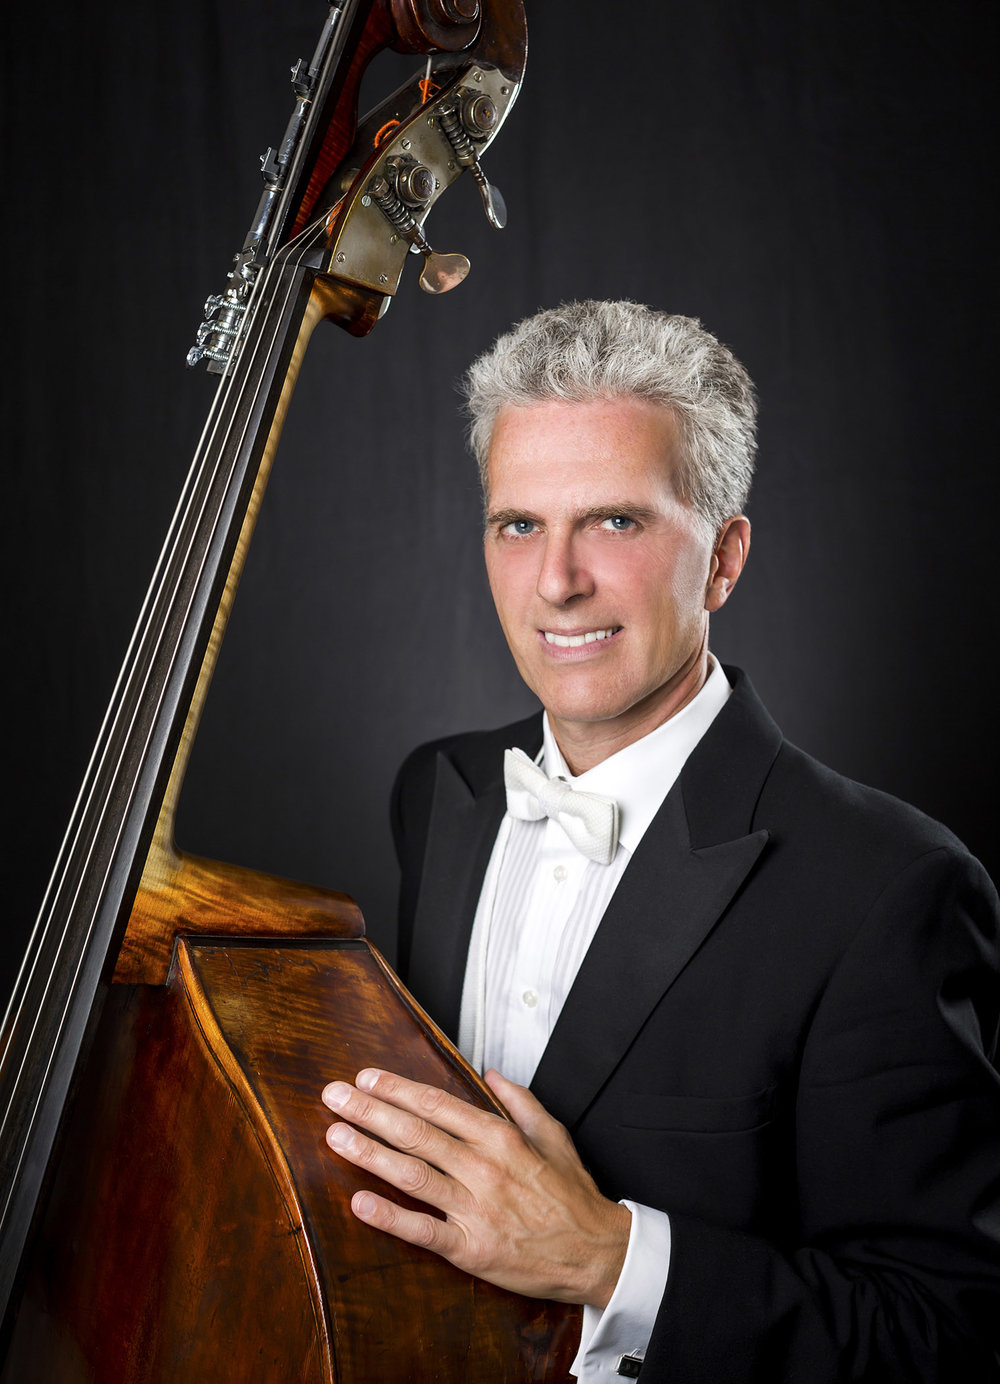 Timothy Cobb - Timothy Cobb is the principal bass of the New York Philharmonic, prior to which he served as principal bass for the Metropolitan Opera Orchestra. Mr. Cobb is the double bass department chair for the Juilliard School, as well as serving on the faculties of the Manhattan School of Music, Purchase College and Rutgers University. Mr. Cobb also holds the title 'Distinguished Artist in Residence' at Lynn University in Boca Raton, Fl.